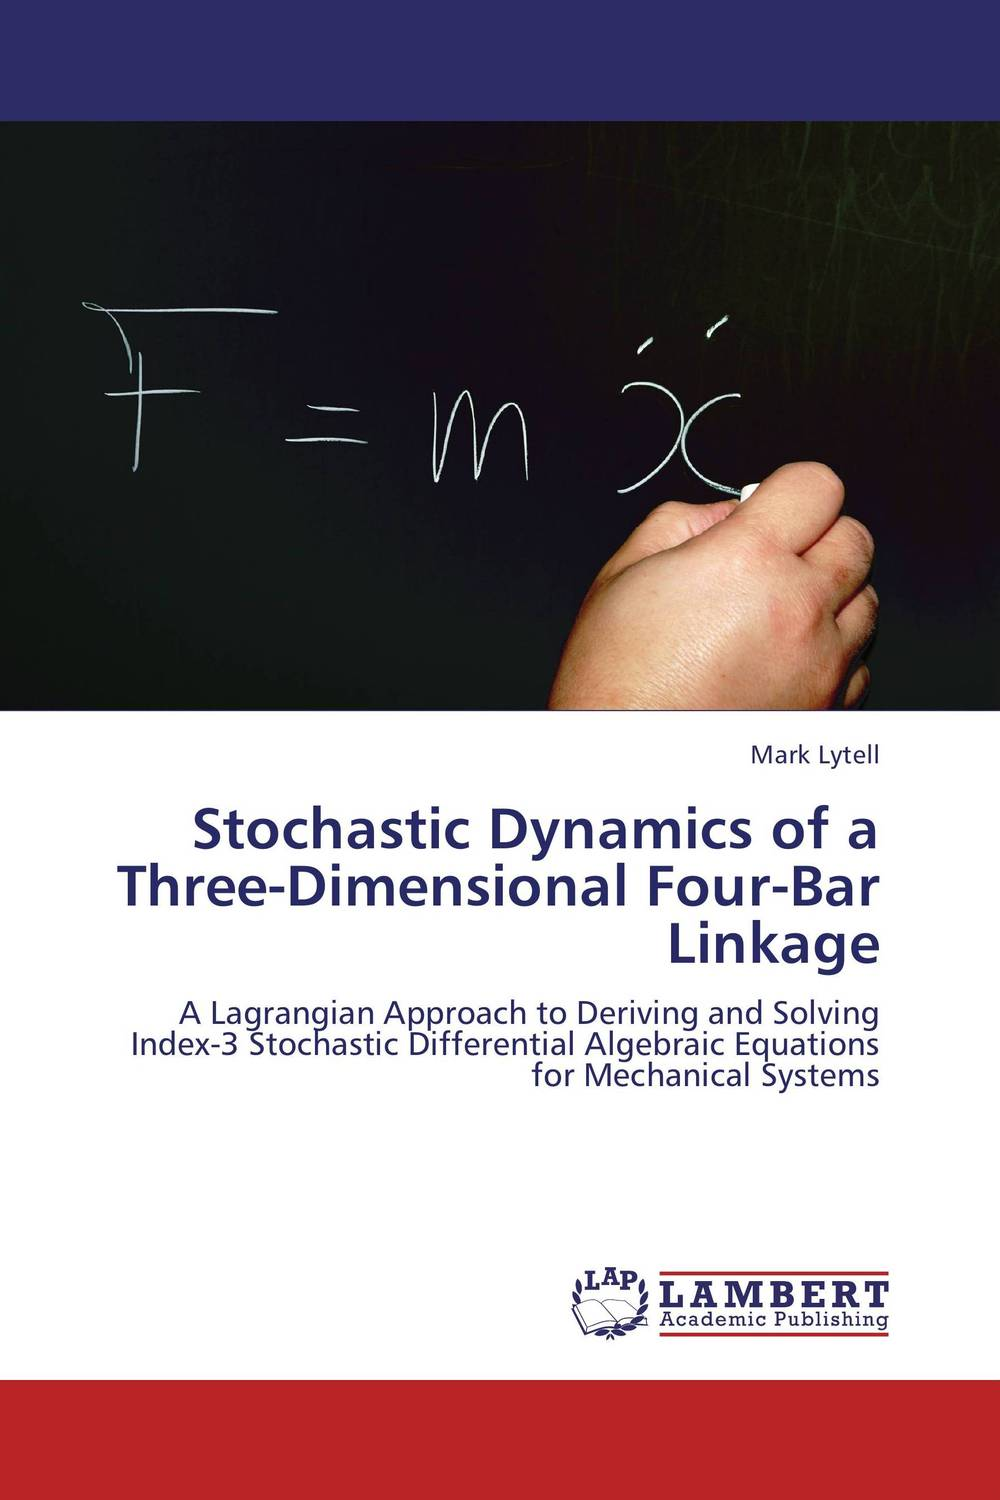 Stochastic Dynamics of a Three-Dimensional Four-Bar Linkage